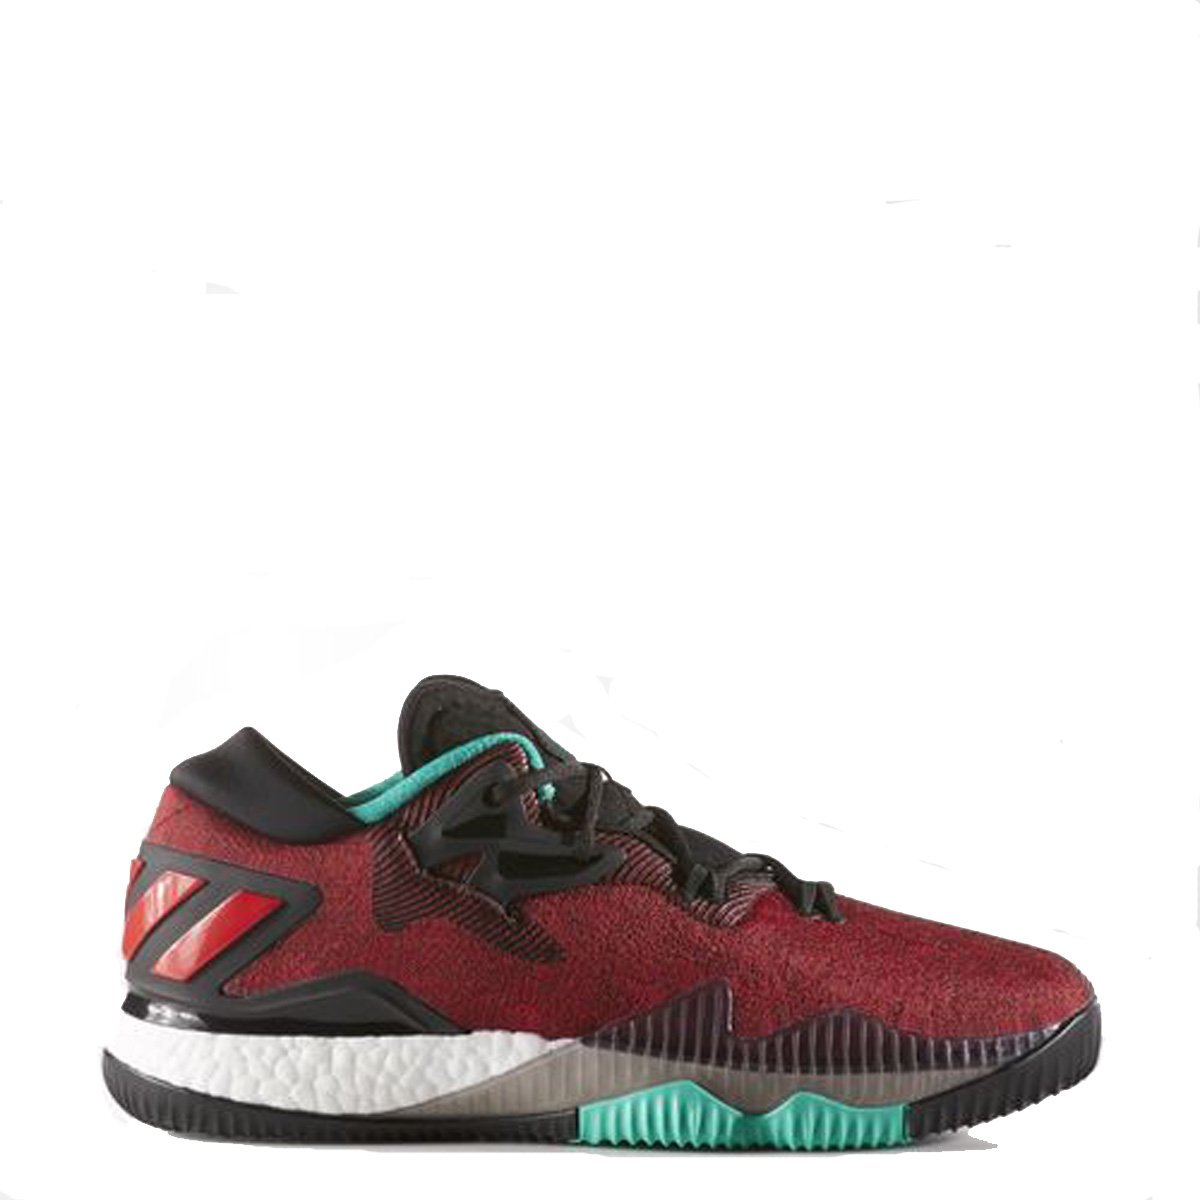 pretty cheap on feet images of cute Adidas Men's | Crazylight Boost Low Basketball Shoes, Black/White ...